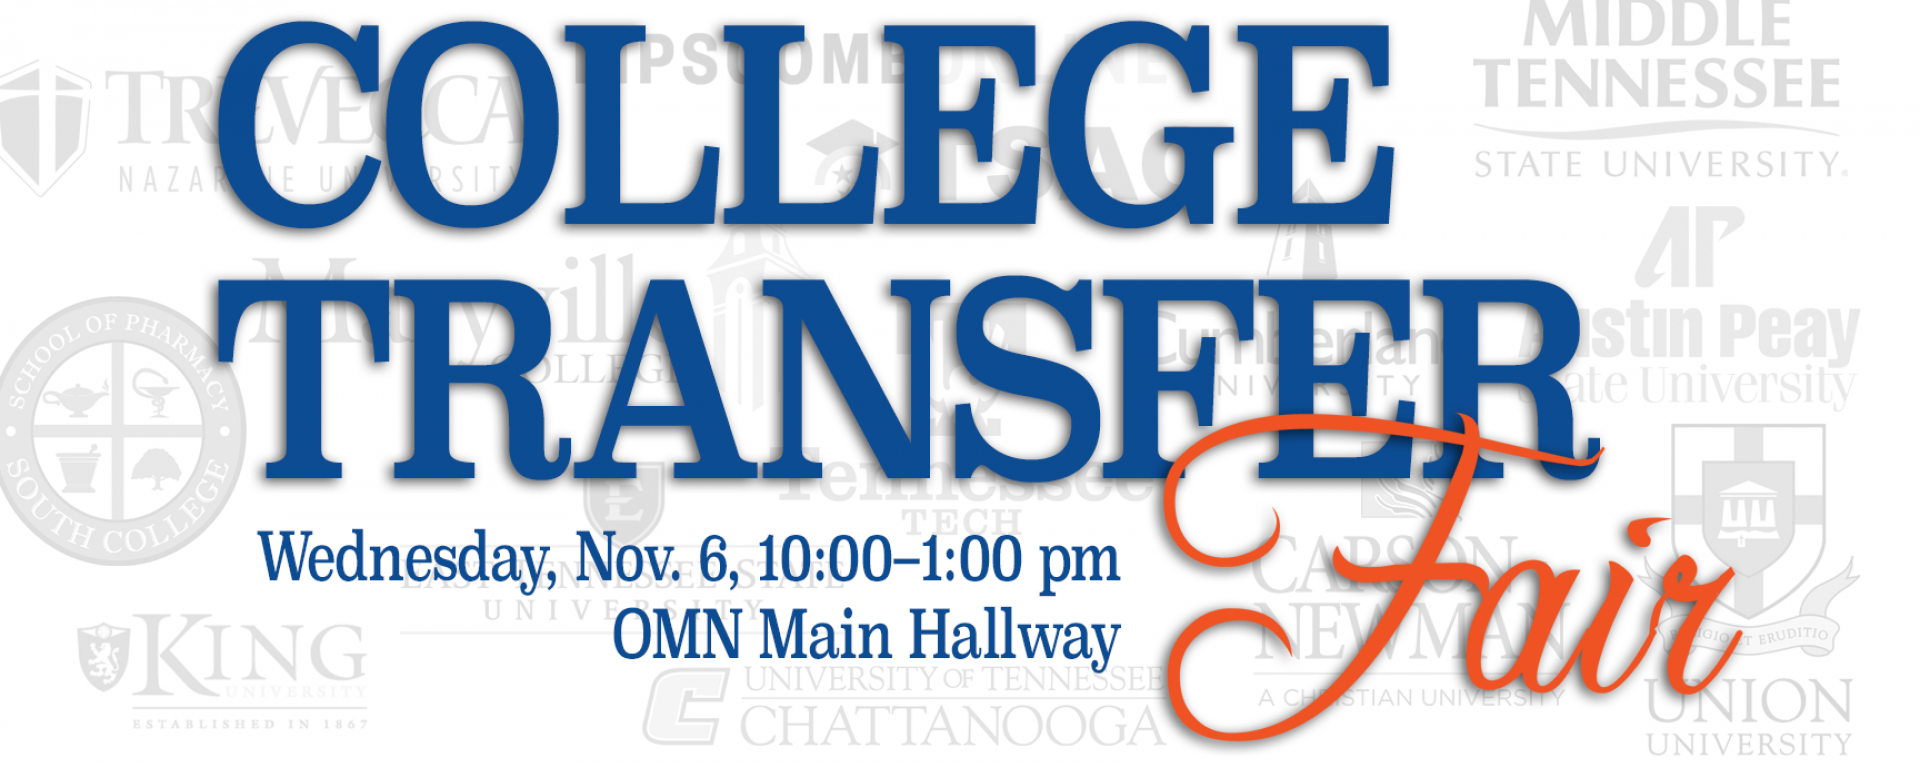 college transfer fair in the OMNI main hallway on November 6th from 10am to 1pm